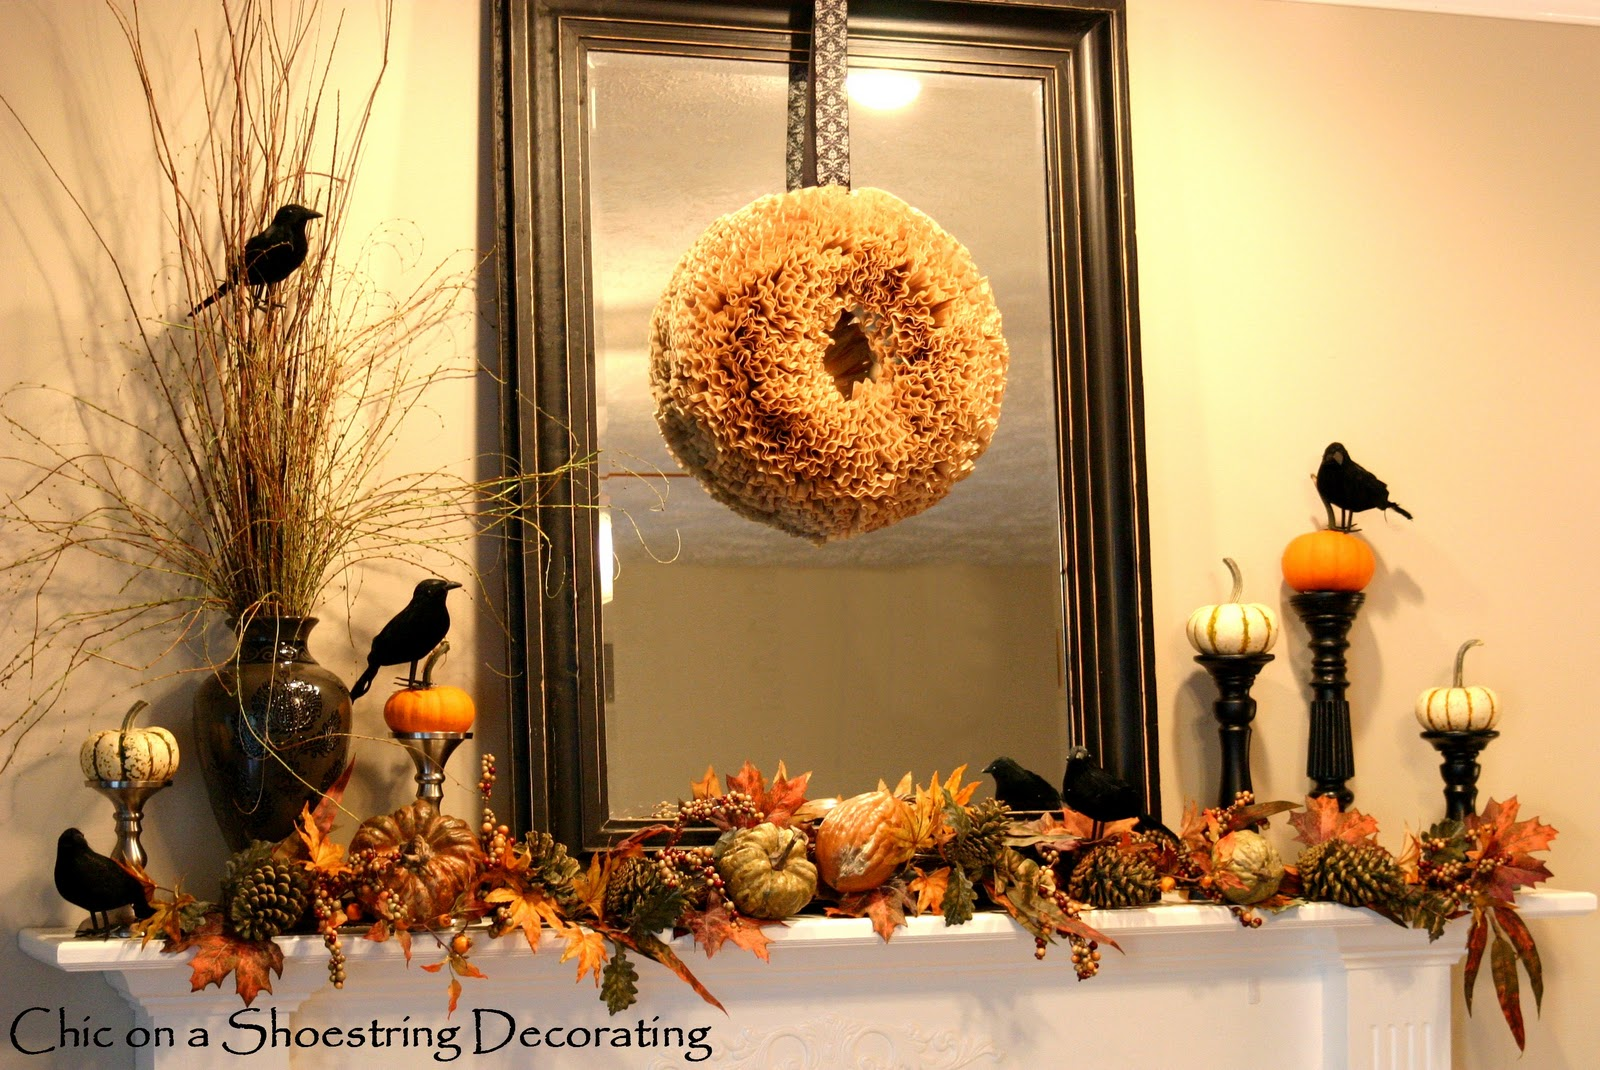 chic on a shoestring decorating halloween mantel is